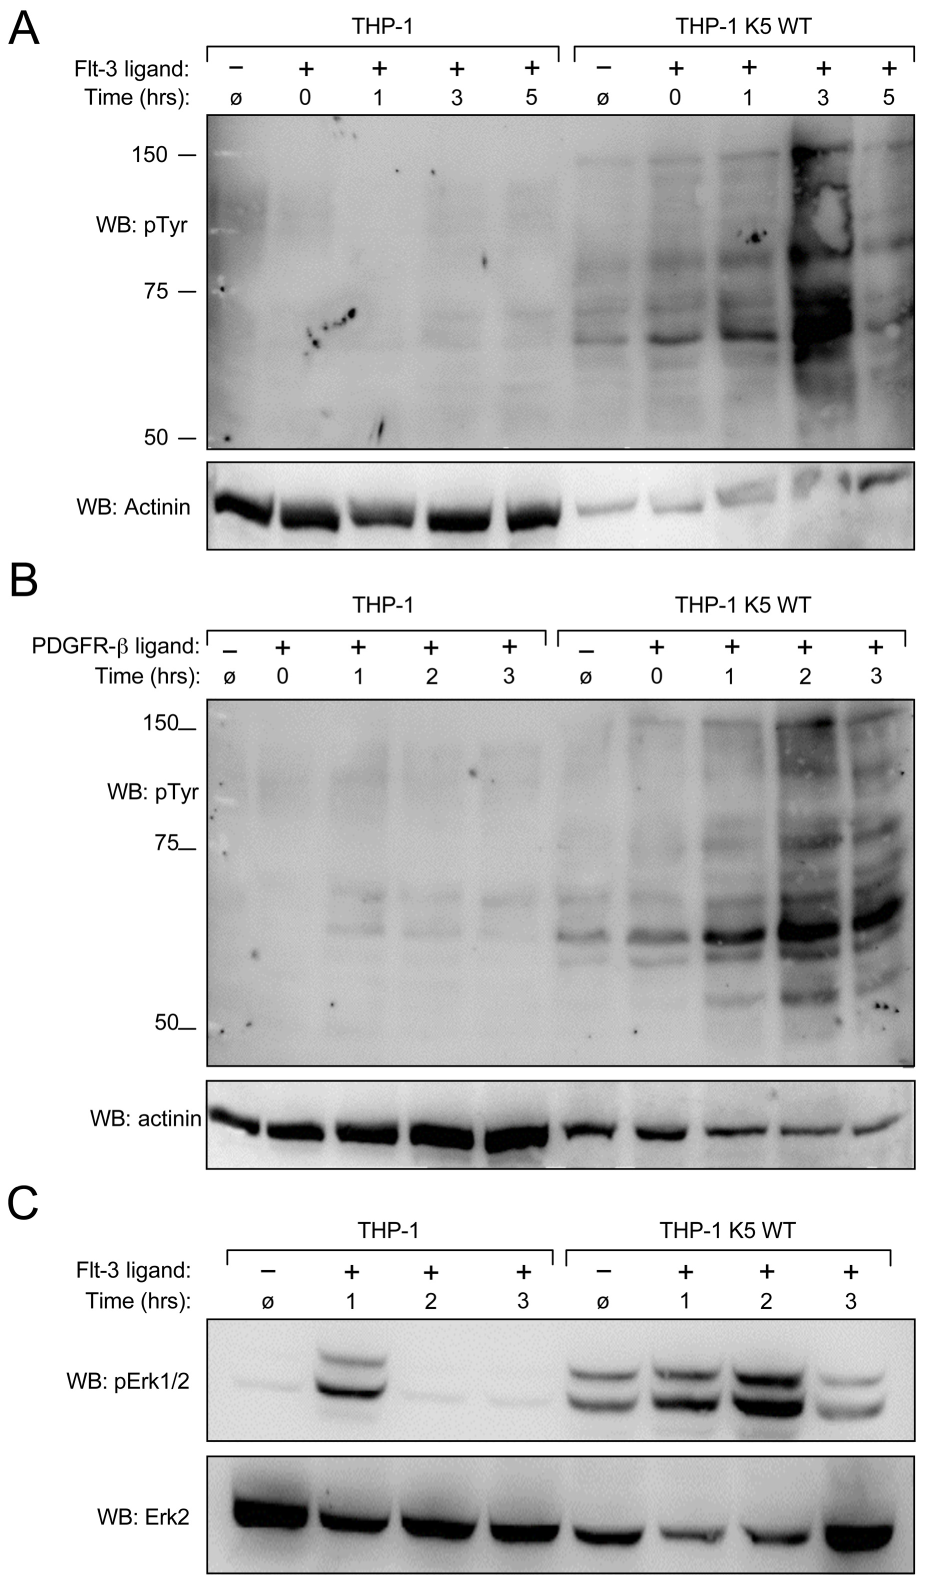 K5 WT-THP-1 cells are more responsive to Flt-3 and PDGF-ß-induced signaling and have increased Erk activation.